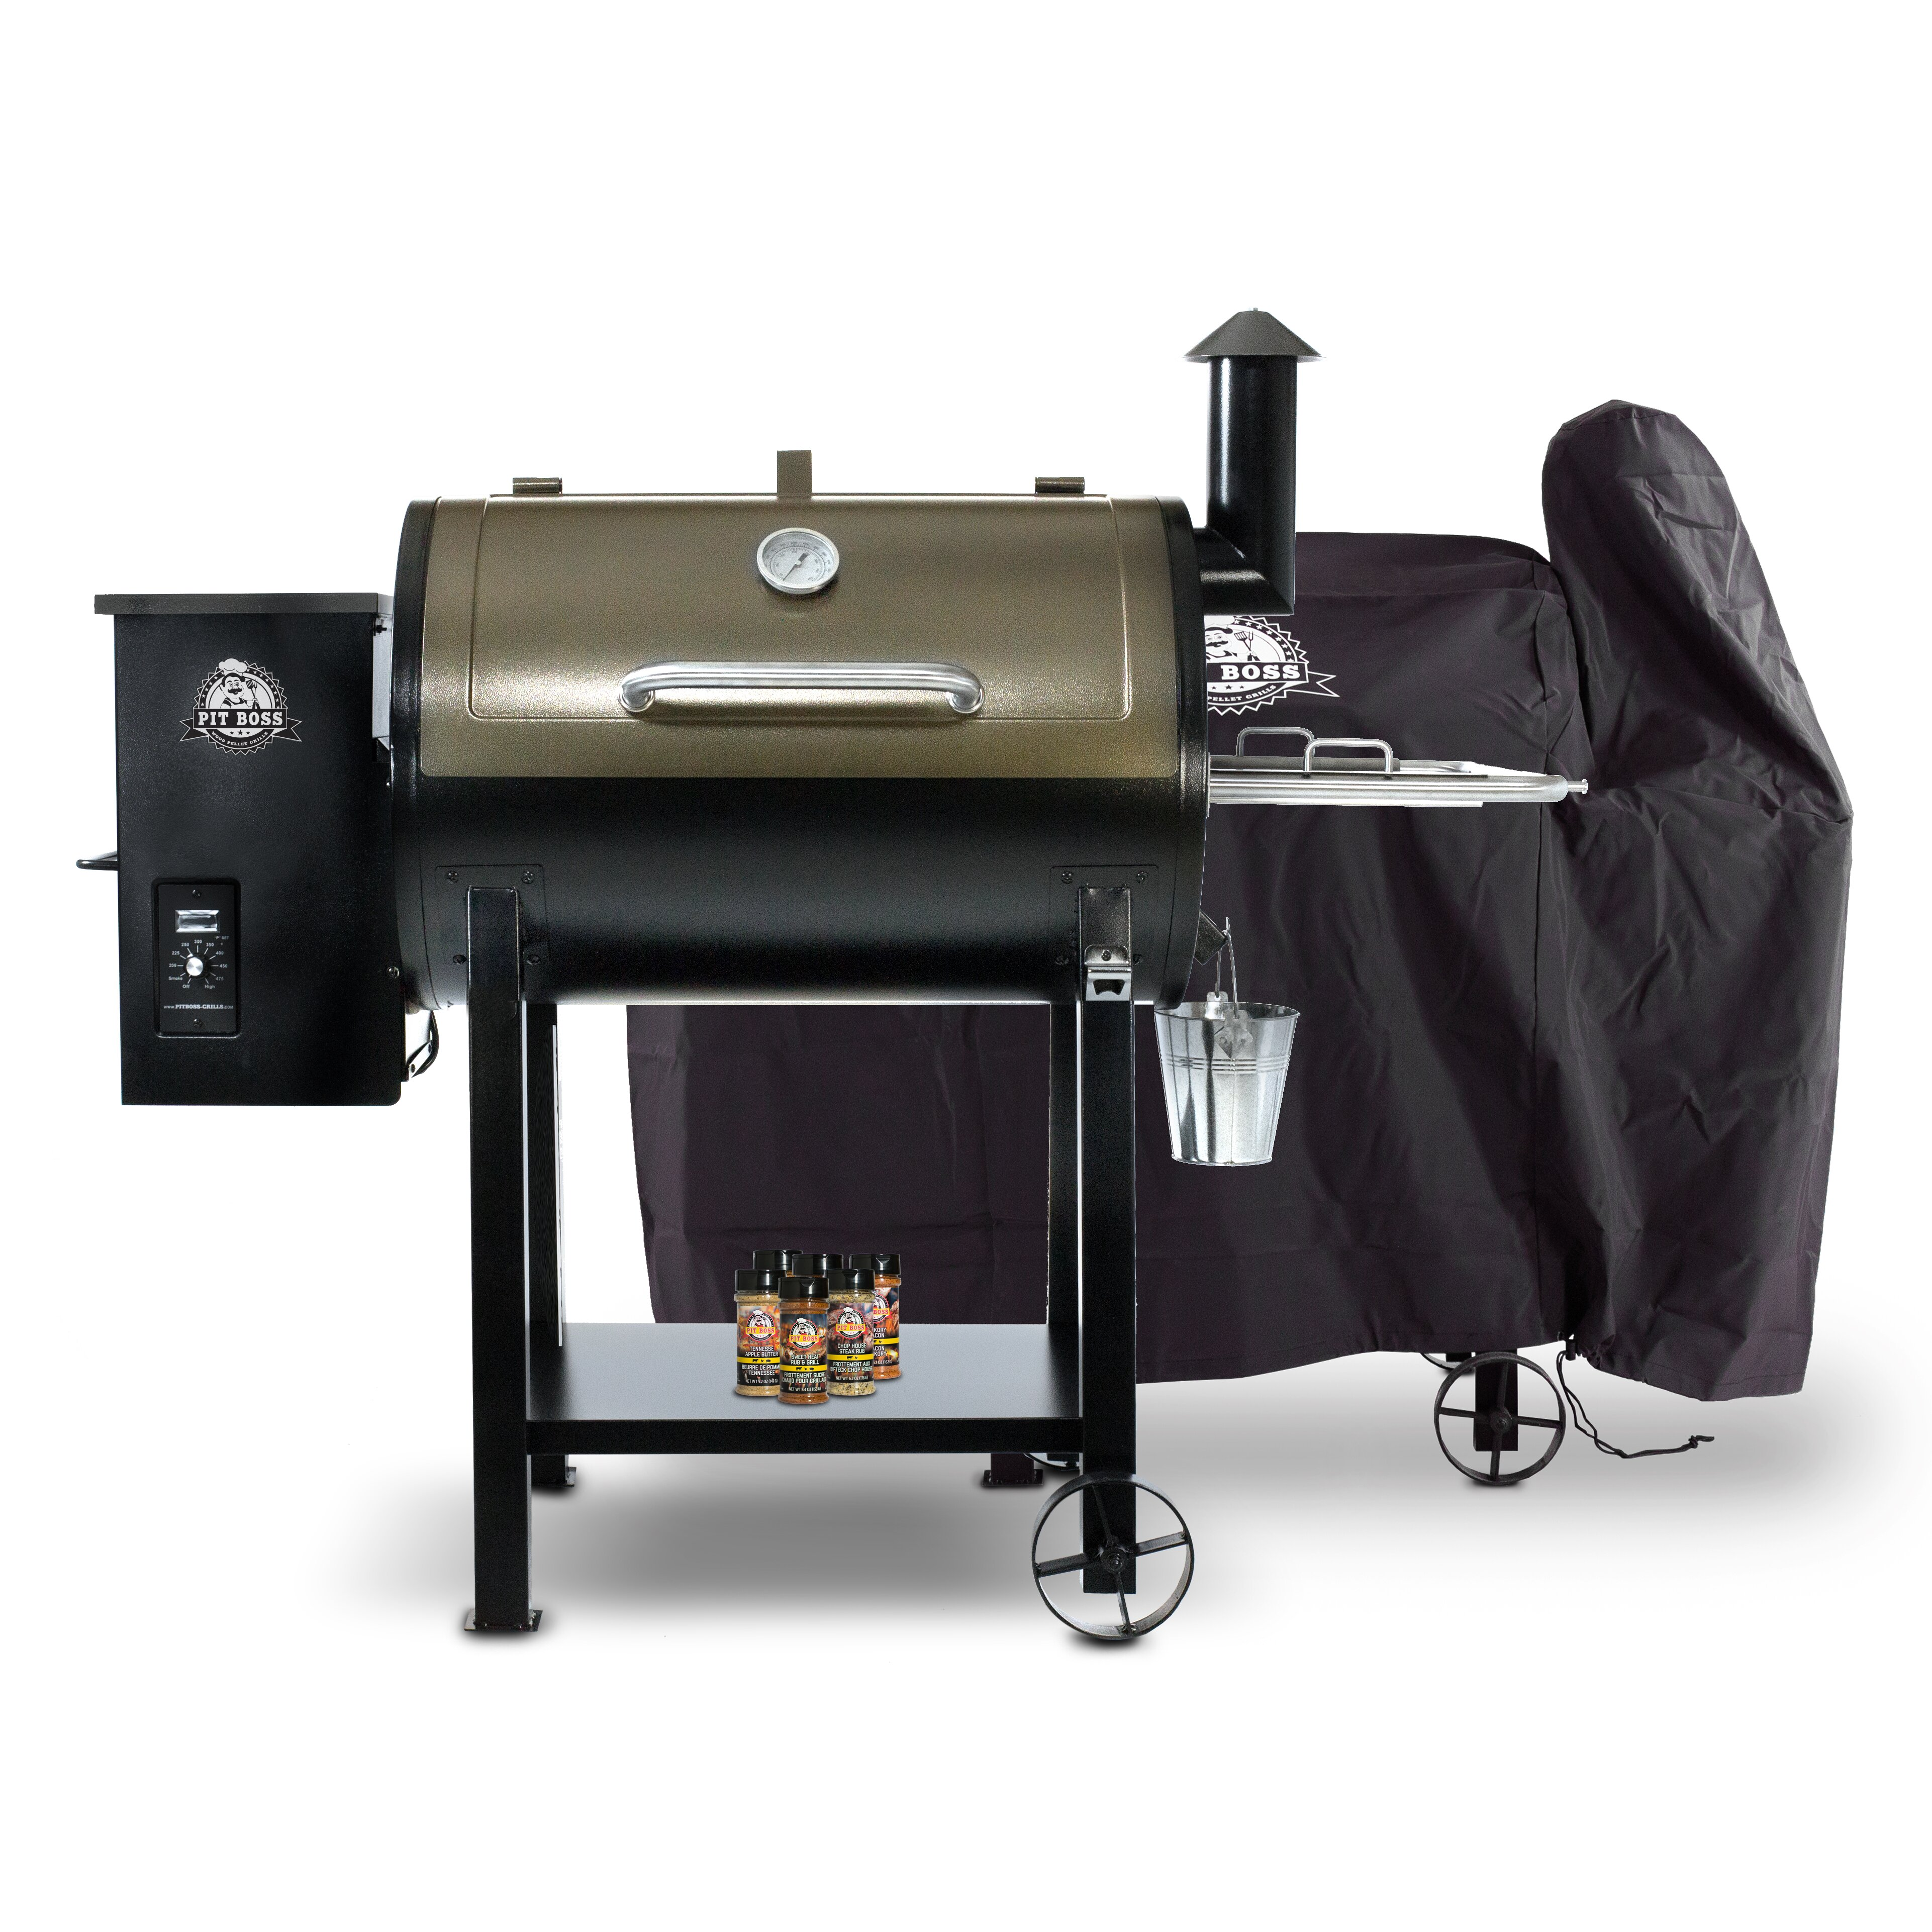 Pit Boss 820d Pellet Grill With Cover And Spice Pack Wayfair